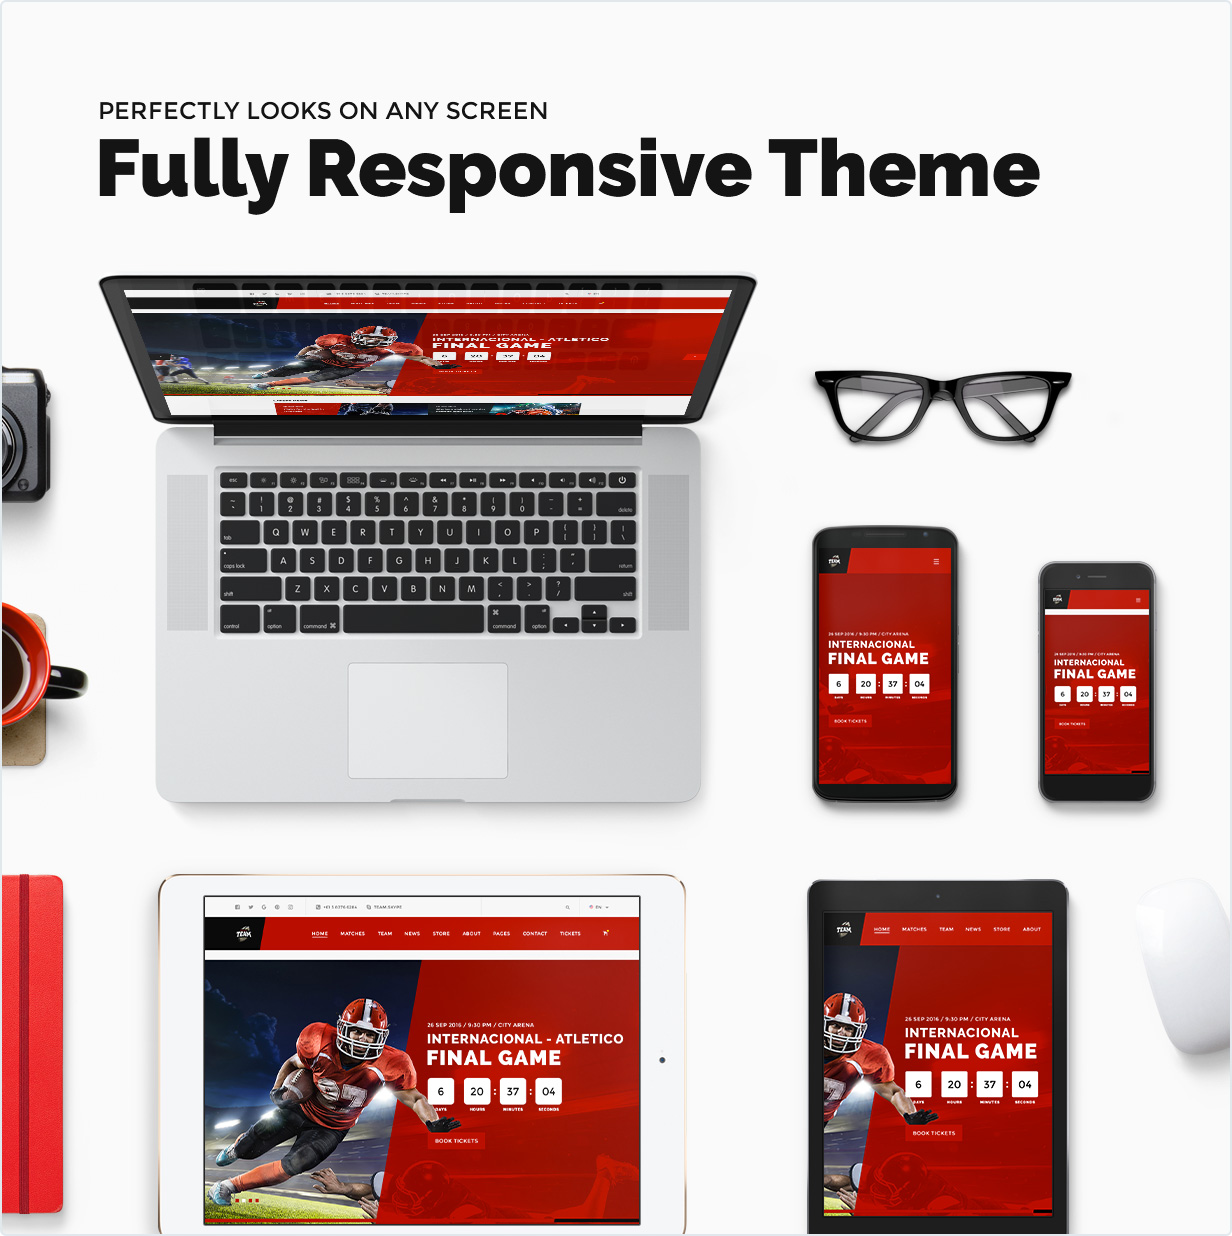 Fully responsive theme